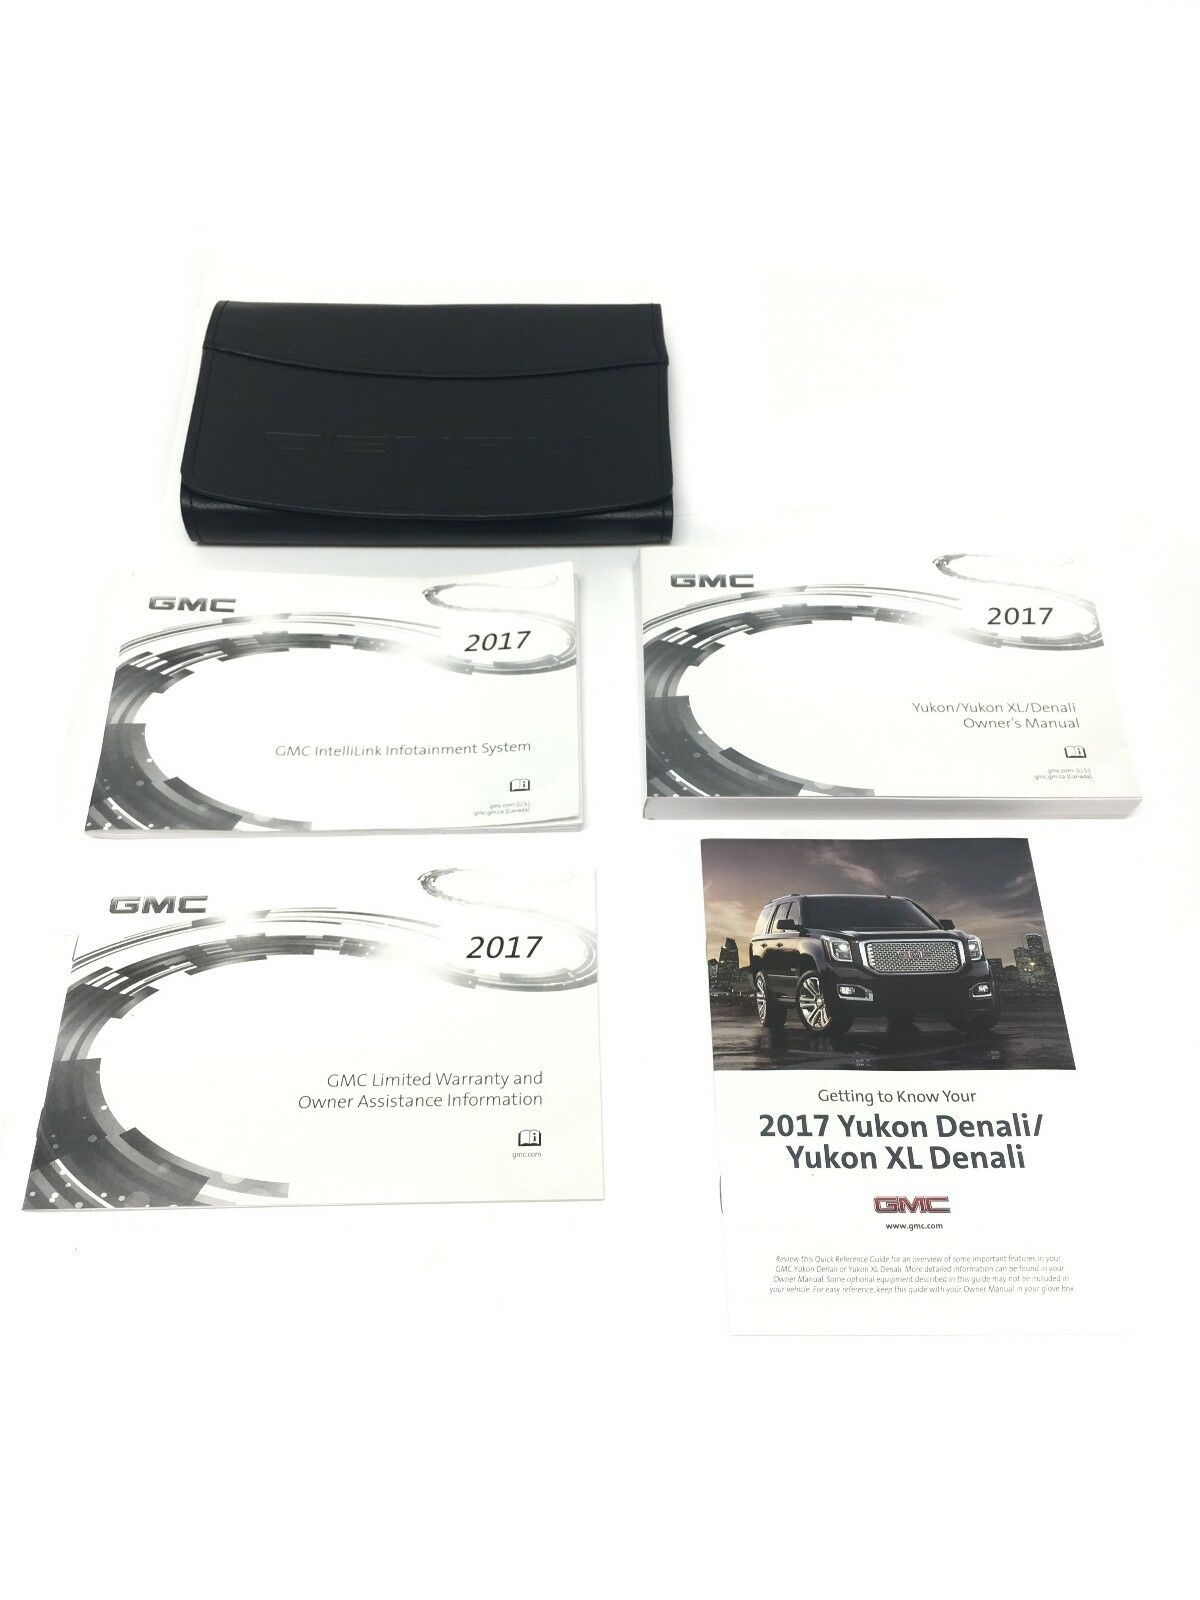 2017 GMC Yukon Denali Owners Manual Booklet w/ Leather Case New OEM 1 of  1FREE Shipping ...